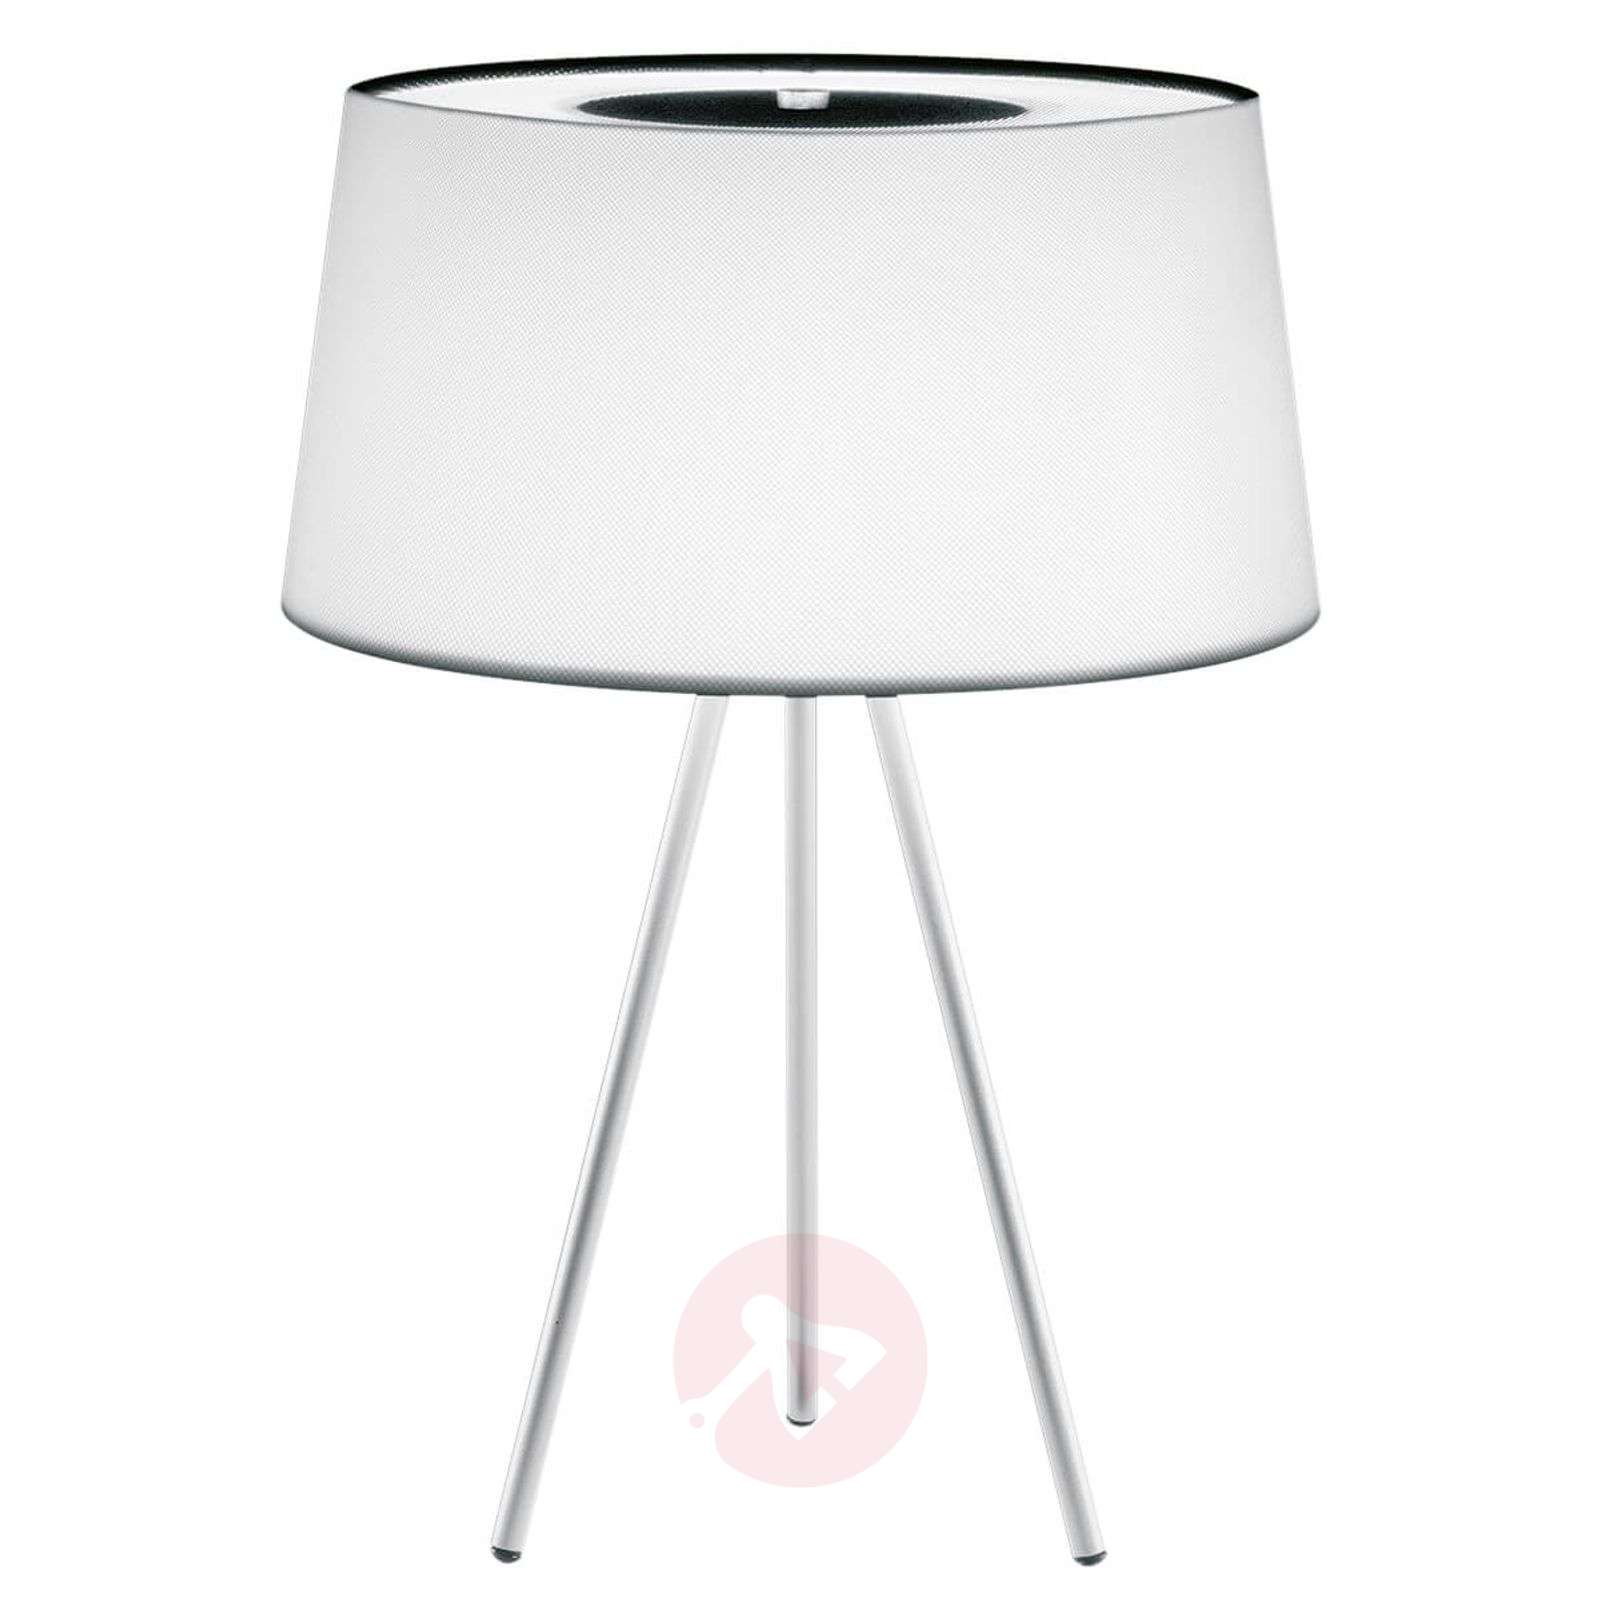 Kundalini Tripod high-quality table lamp-5520063X-01